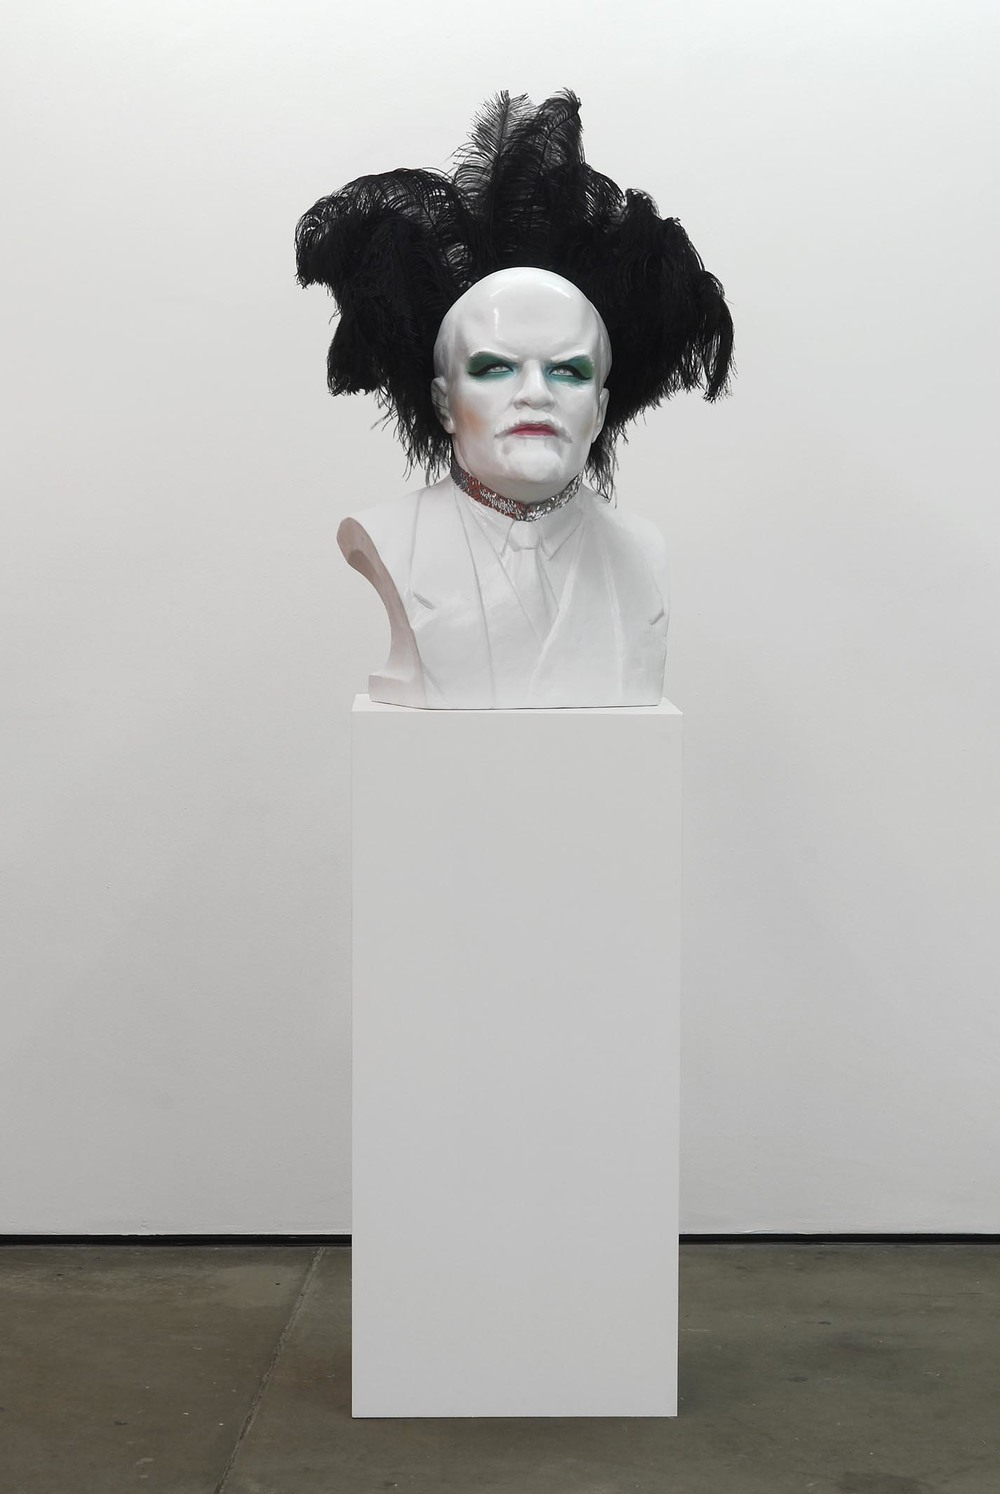 Diana (At the Frontier) 2008 ostrich feathers, sequin collar, ceramic bust and plinth 100 x 64 x 48cm